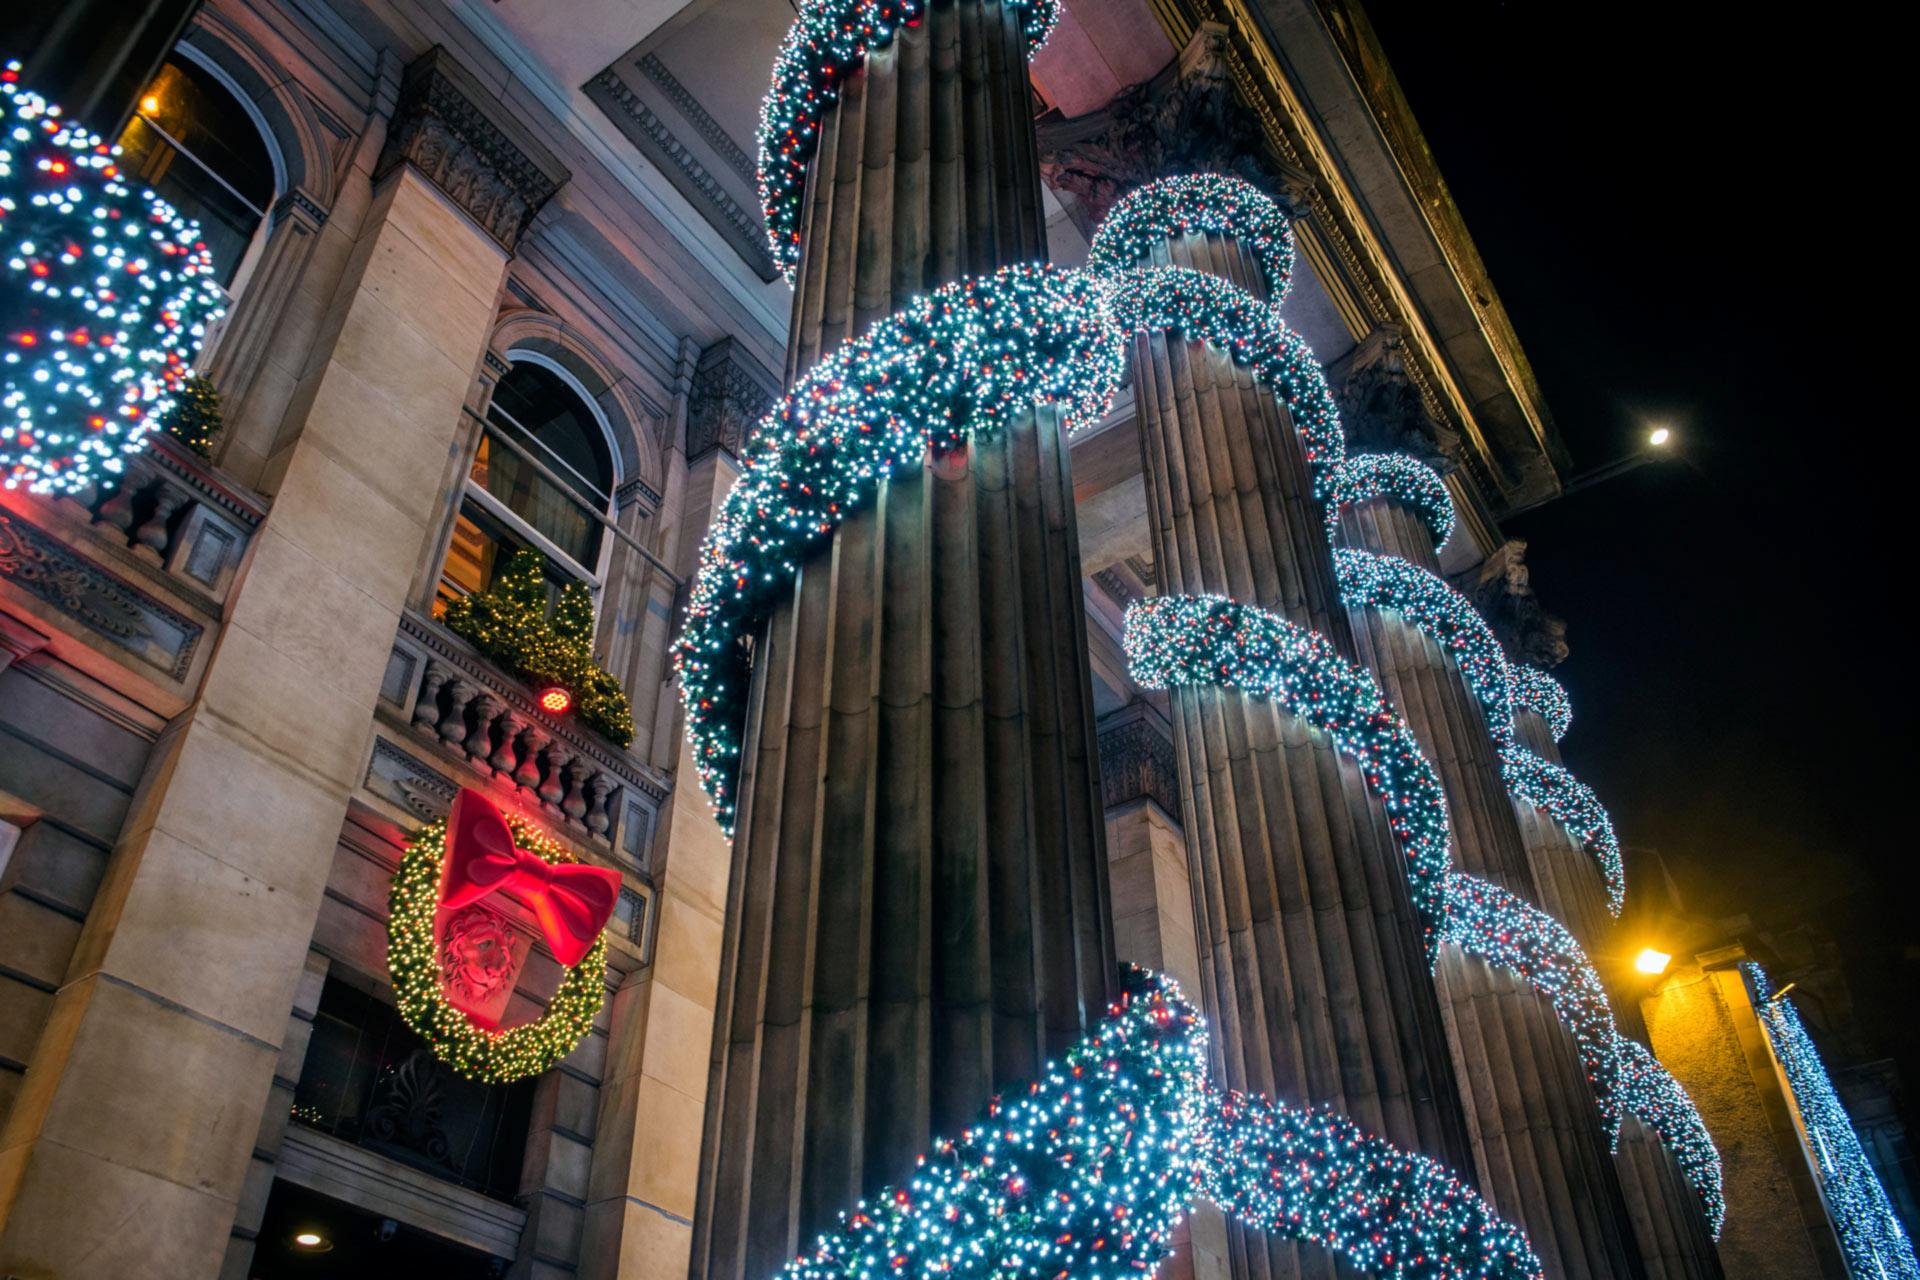 Edinburgh's Christmas - Markets & Events | VisitScotland